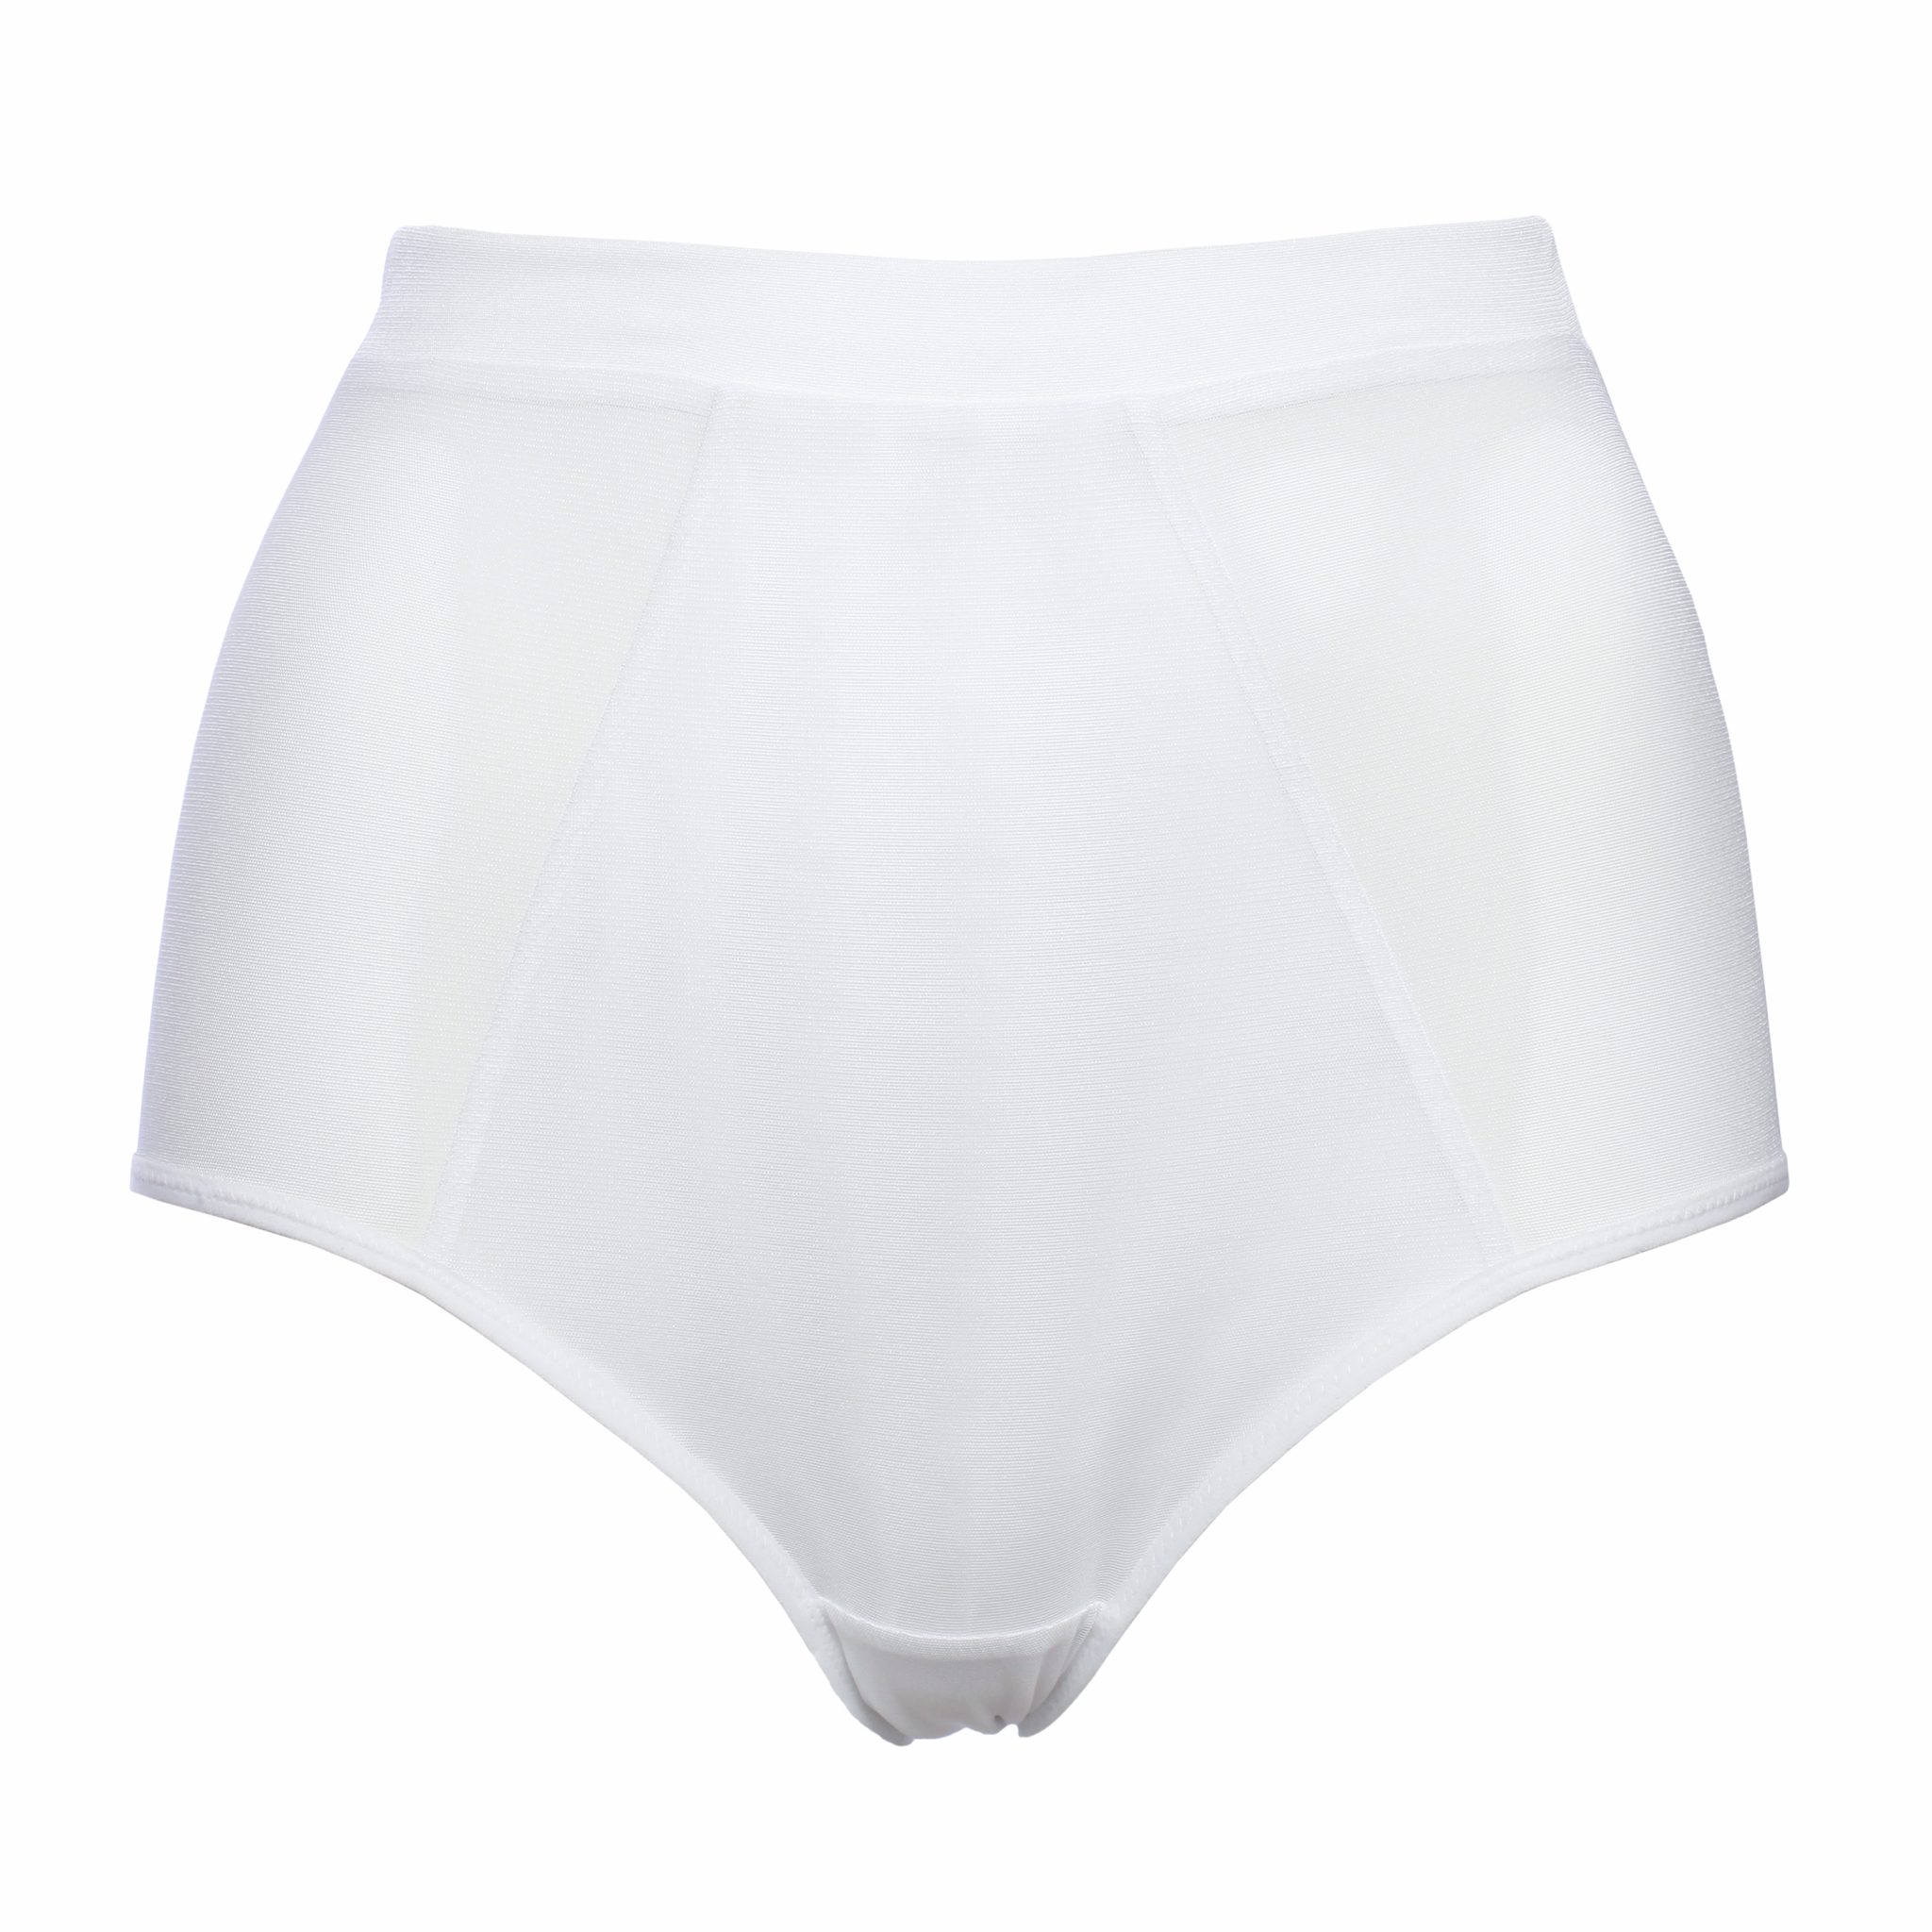 White Mesh High Waist Panties by Flashyouandme.com